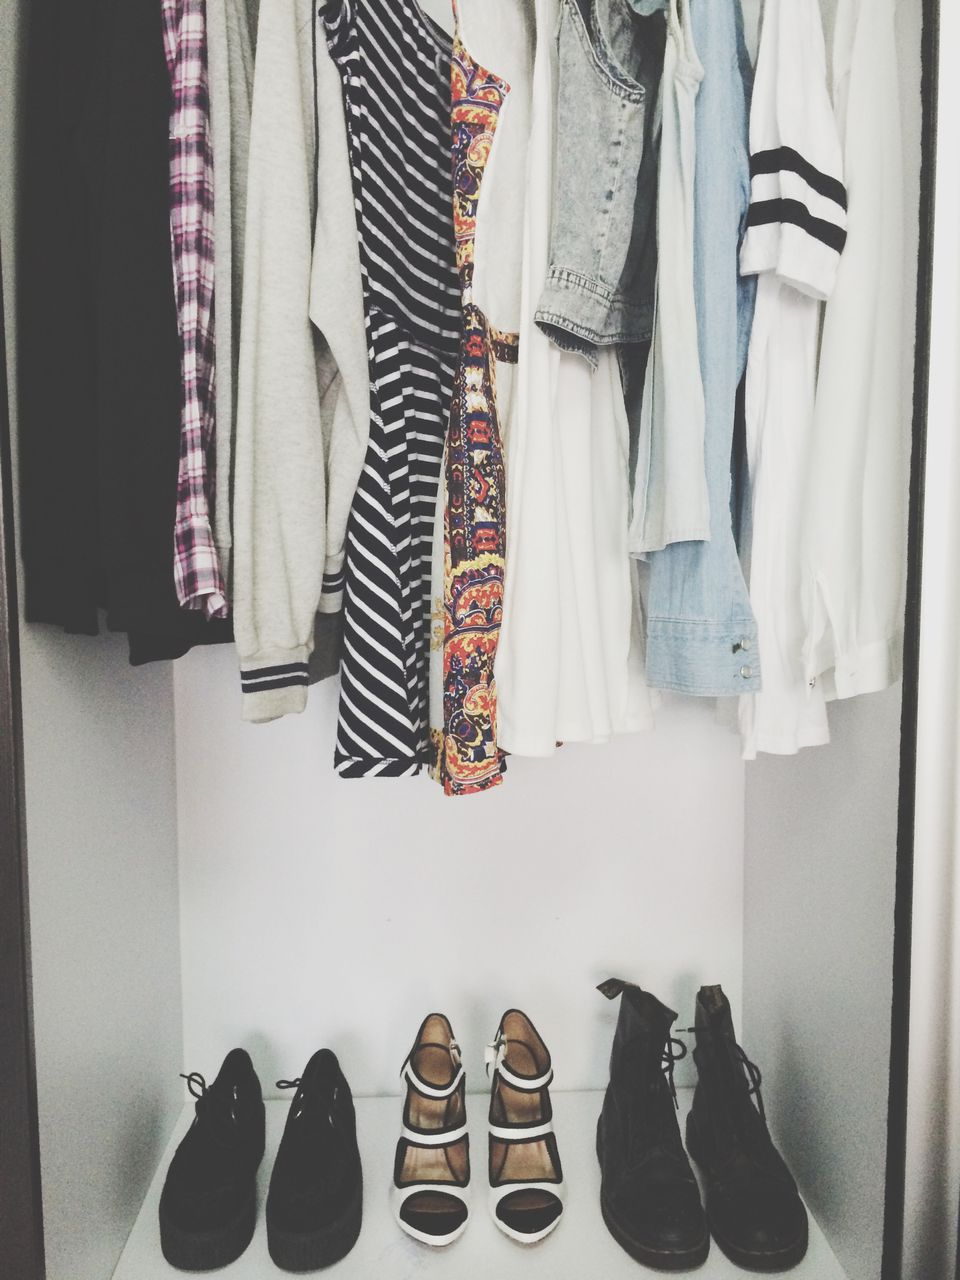 Professional Organizer's Clothes Storage Tips